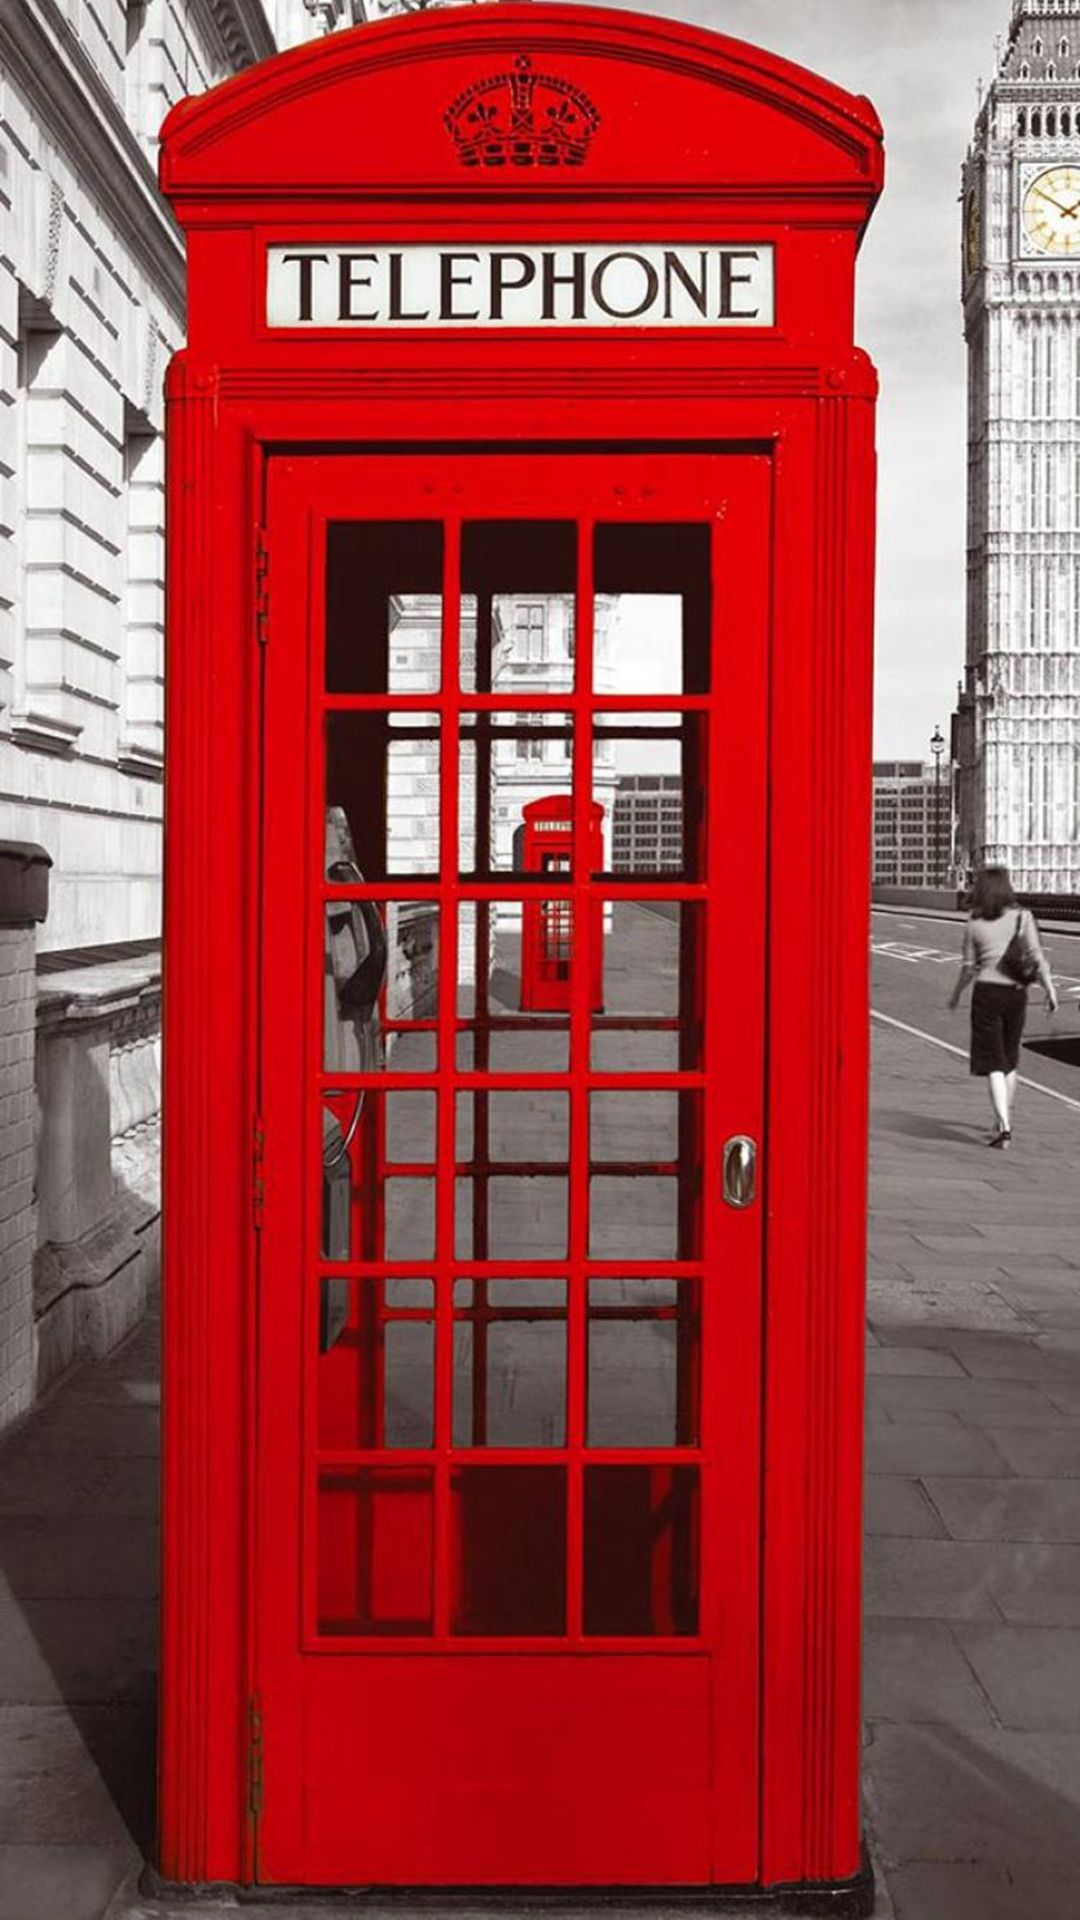 England City Street Red Telephone Booth Iphone 6 Plus Wallpaper London Telephone Booth London Phone Booth London Red Telephone